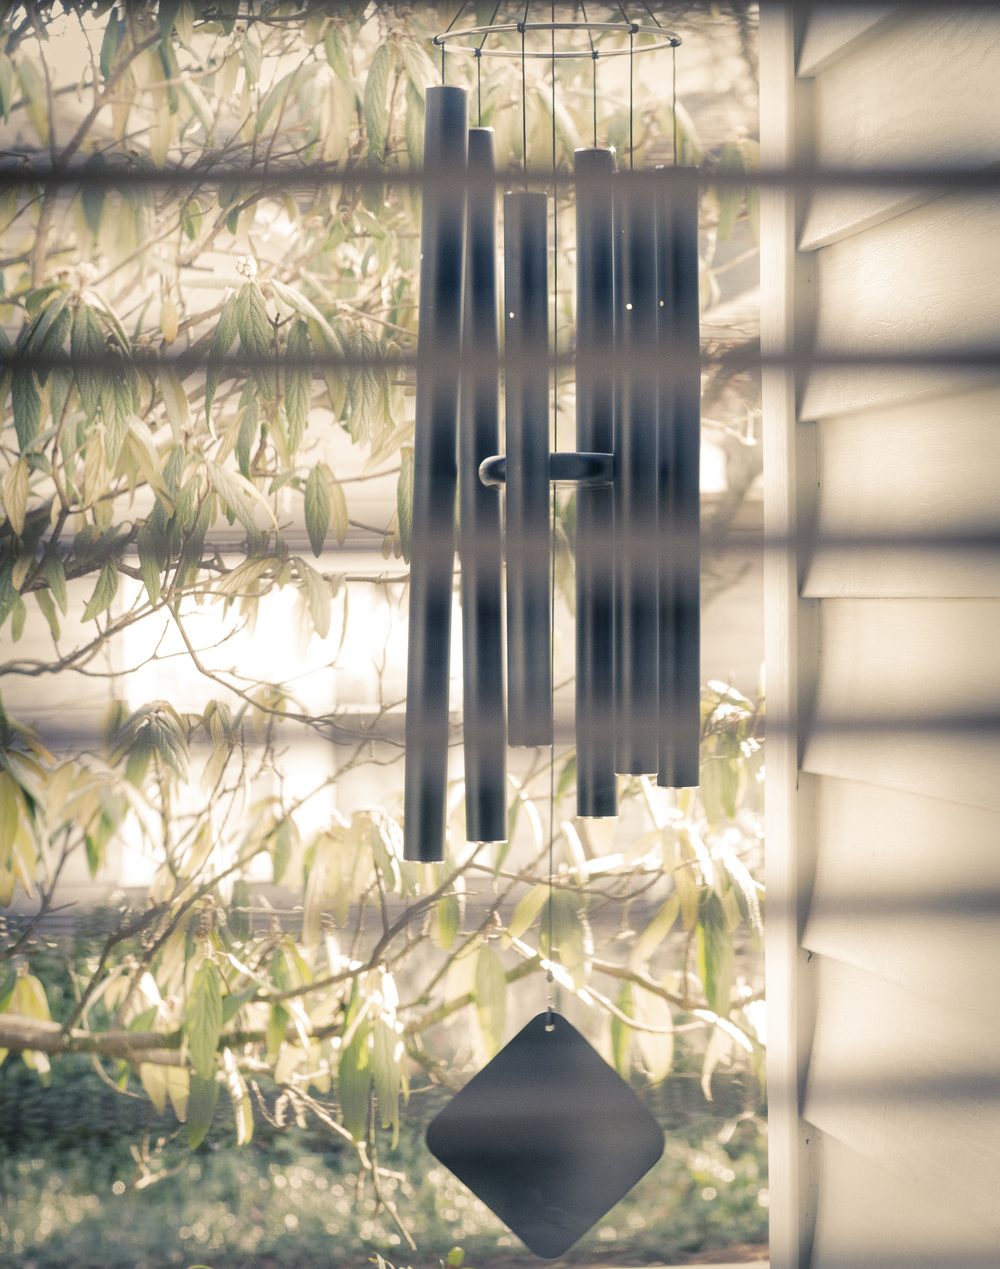 Durham_801_Windchimes_ThrutheBlinds_2102016.jpg